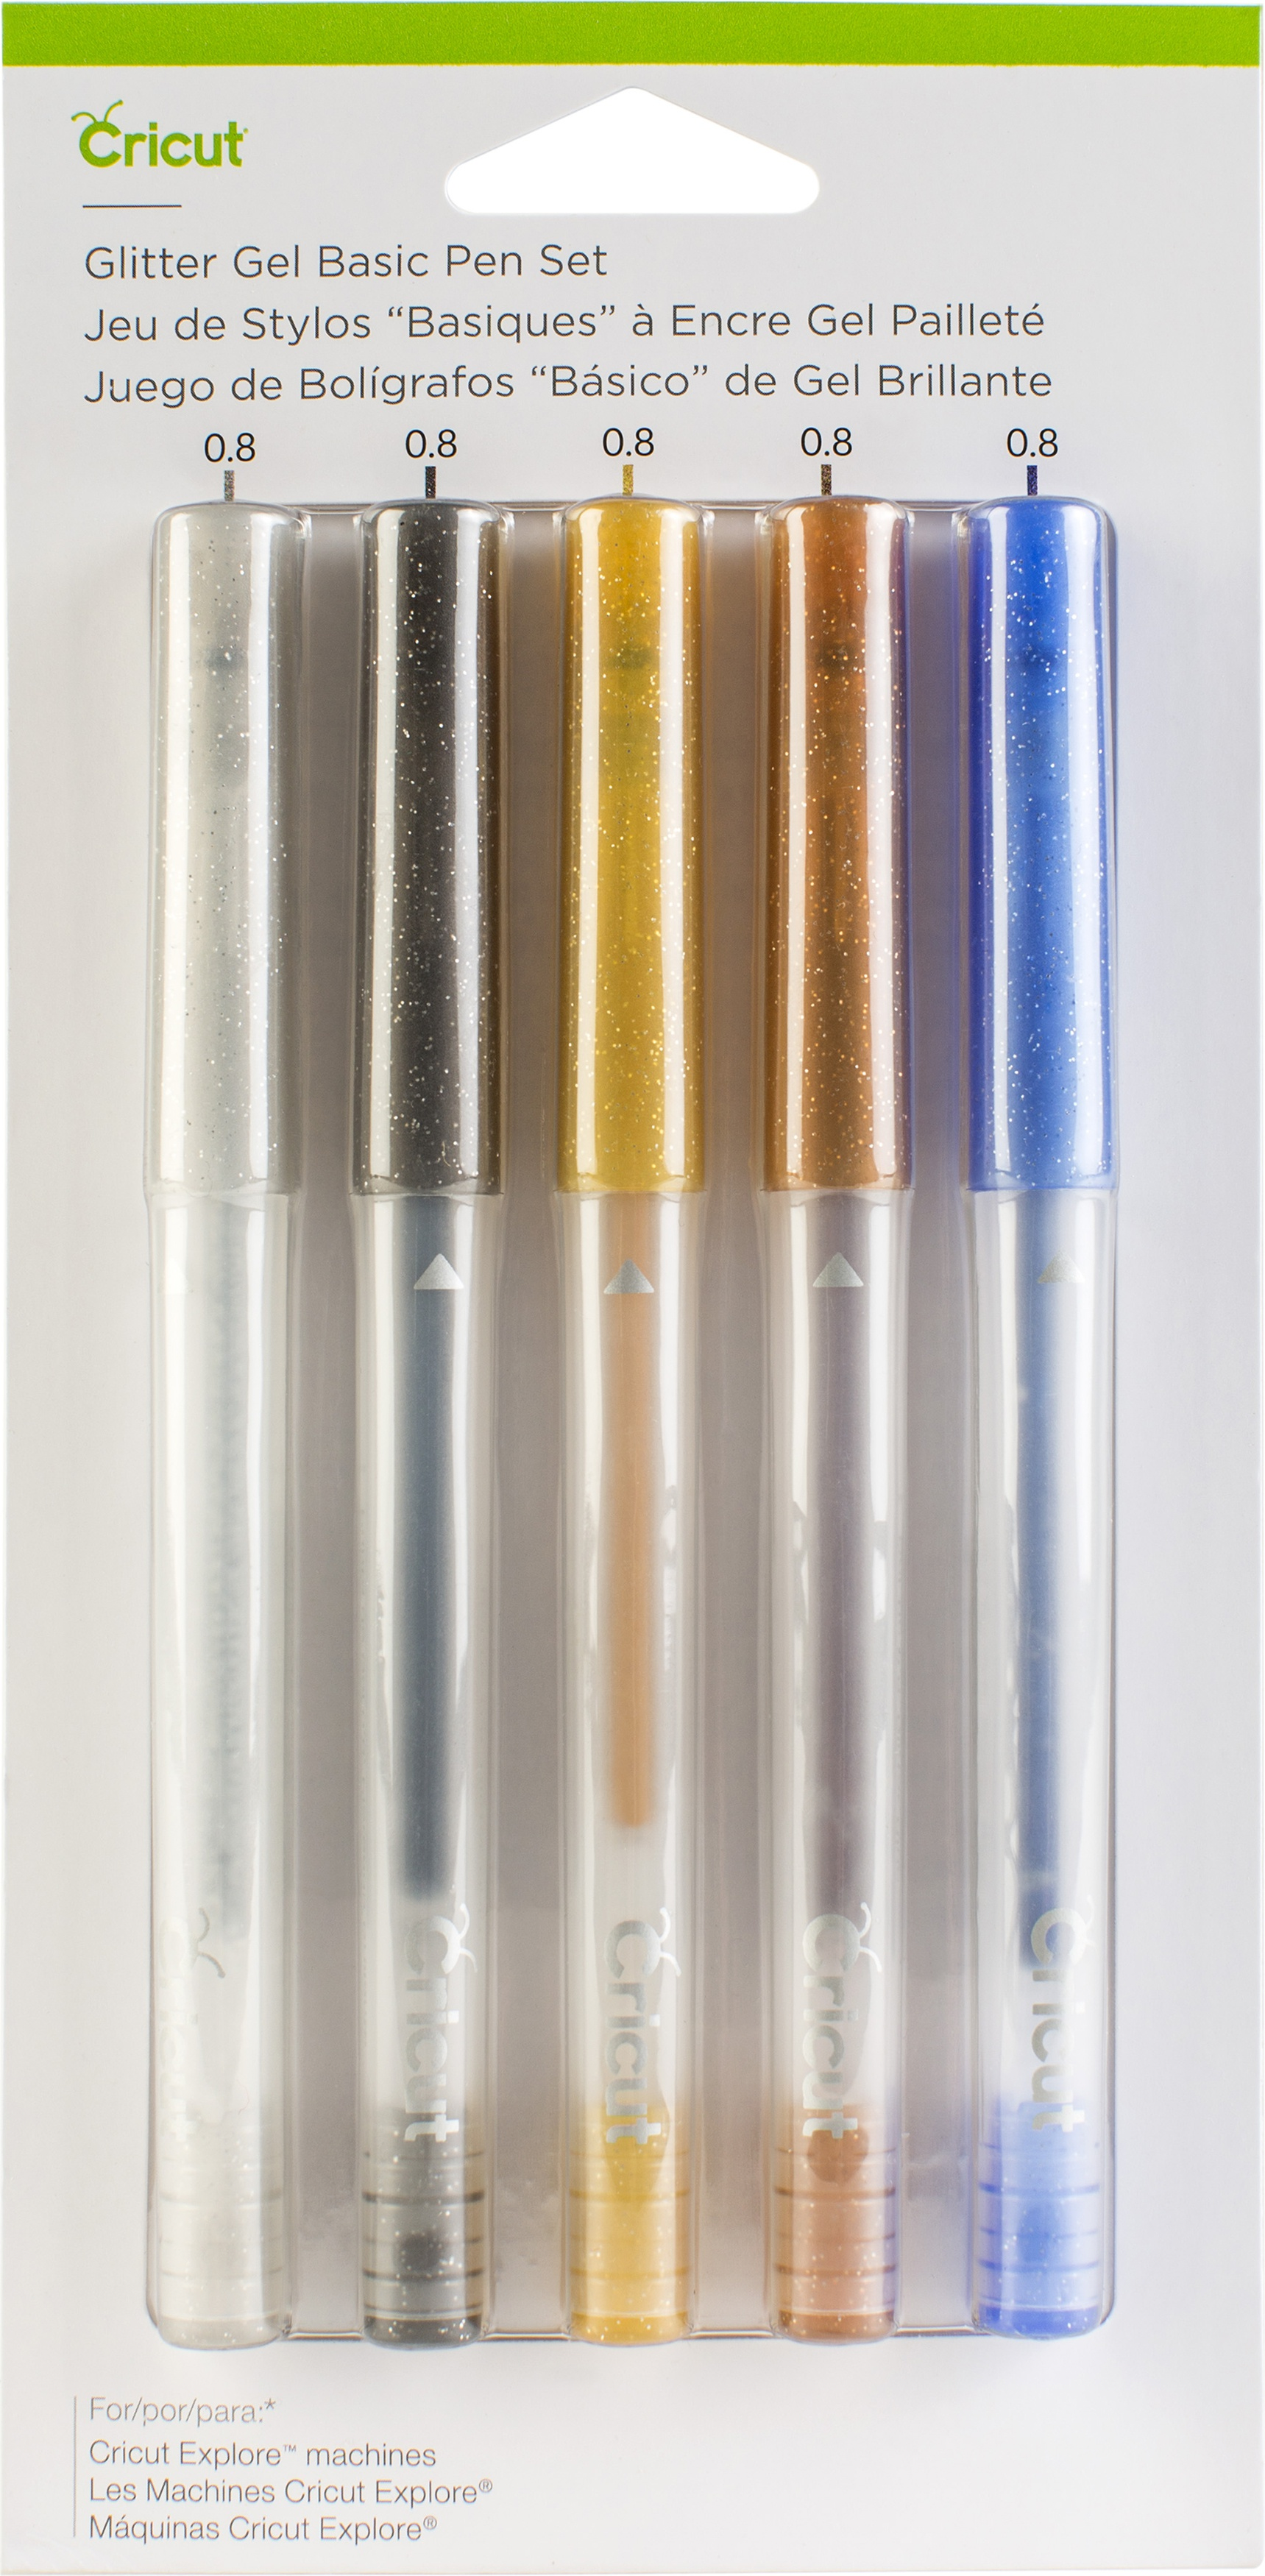 Cricut Glitter Gel Pen Set 5/Pkg-Basics